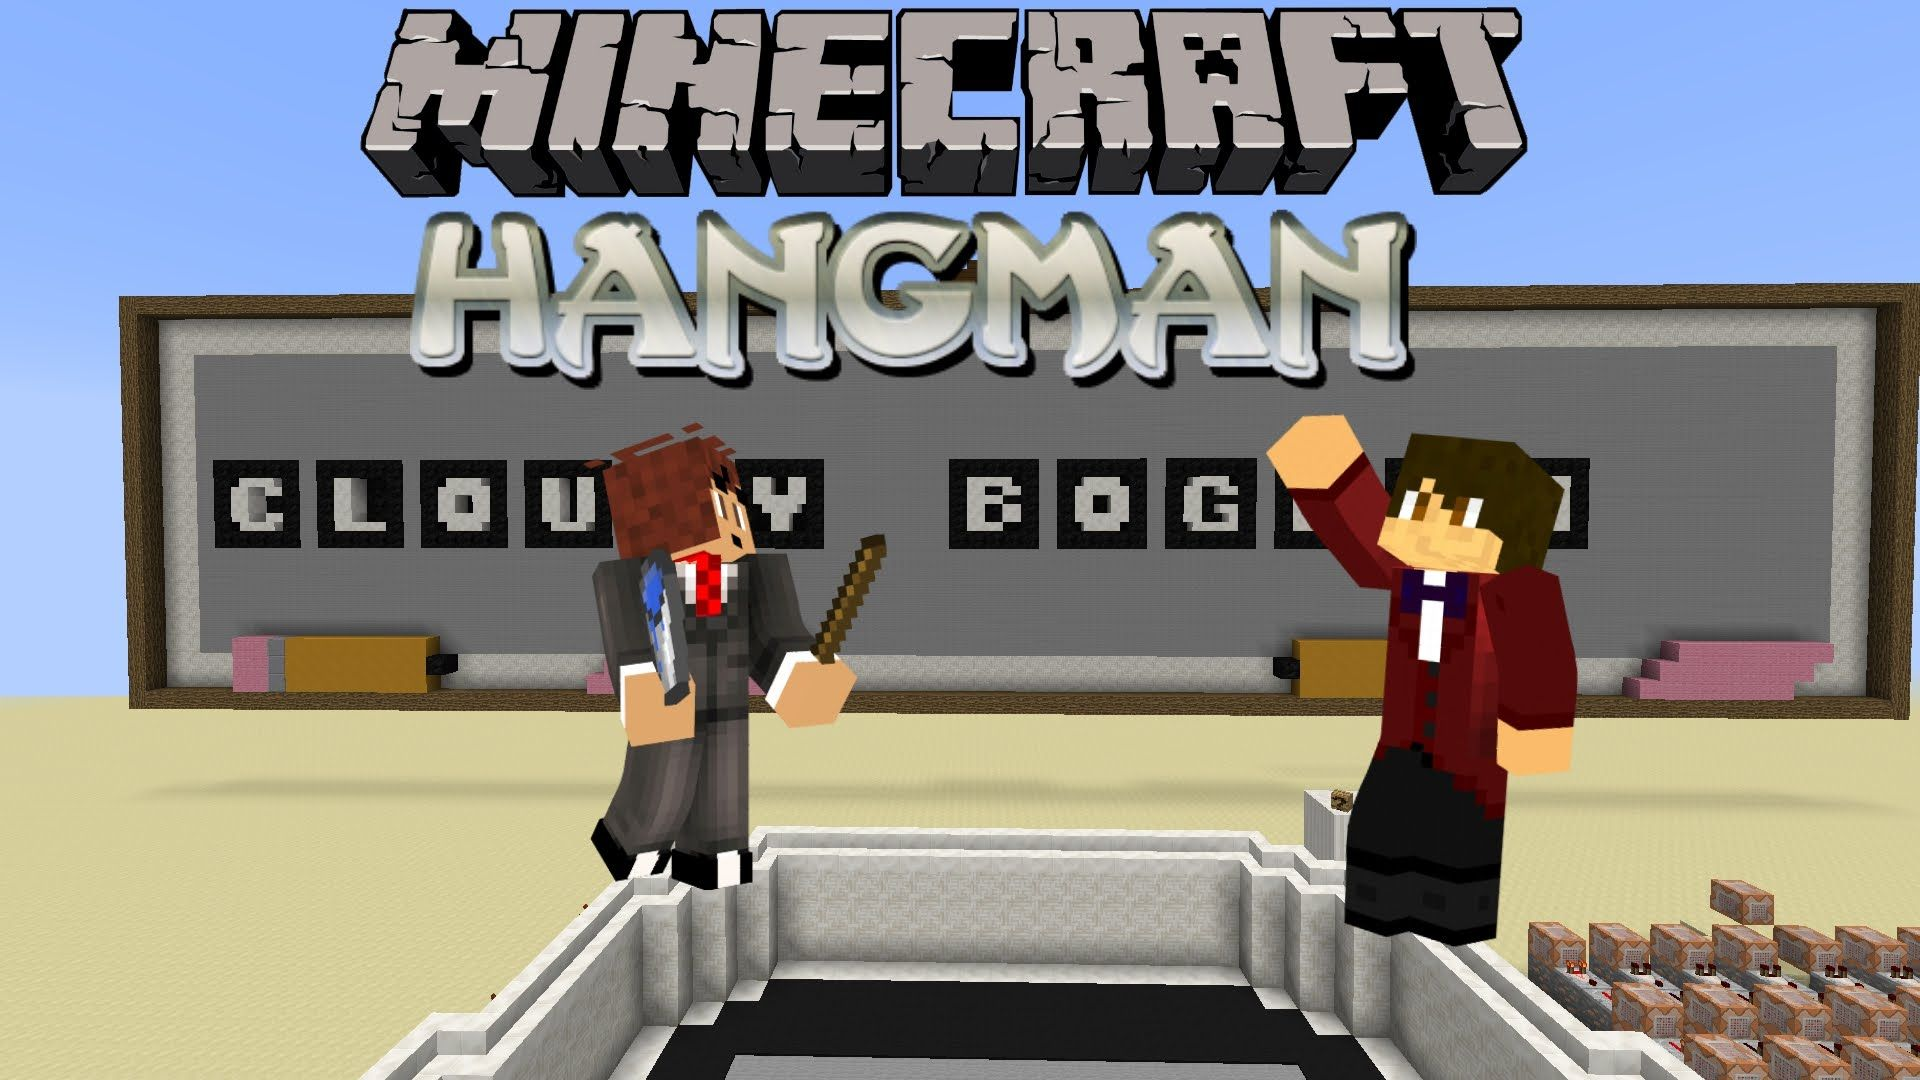 Hangman Map for Minecraft 1.8.8 The Hangman map for